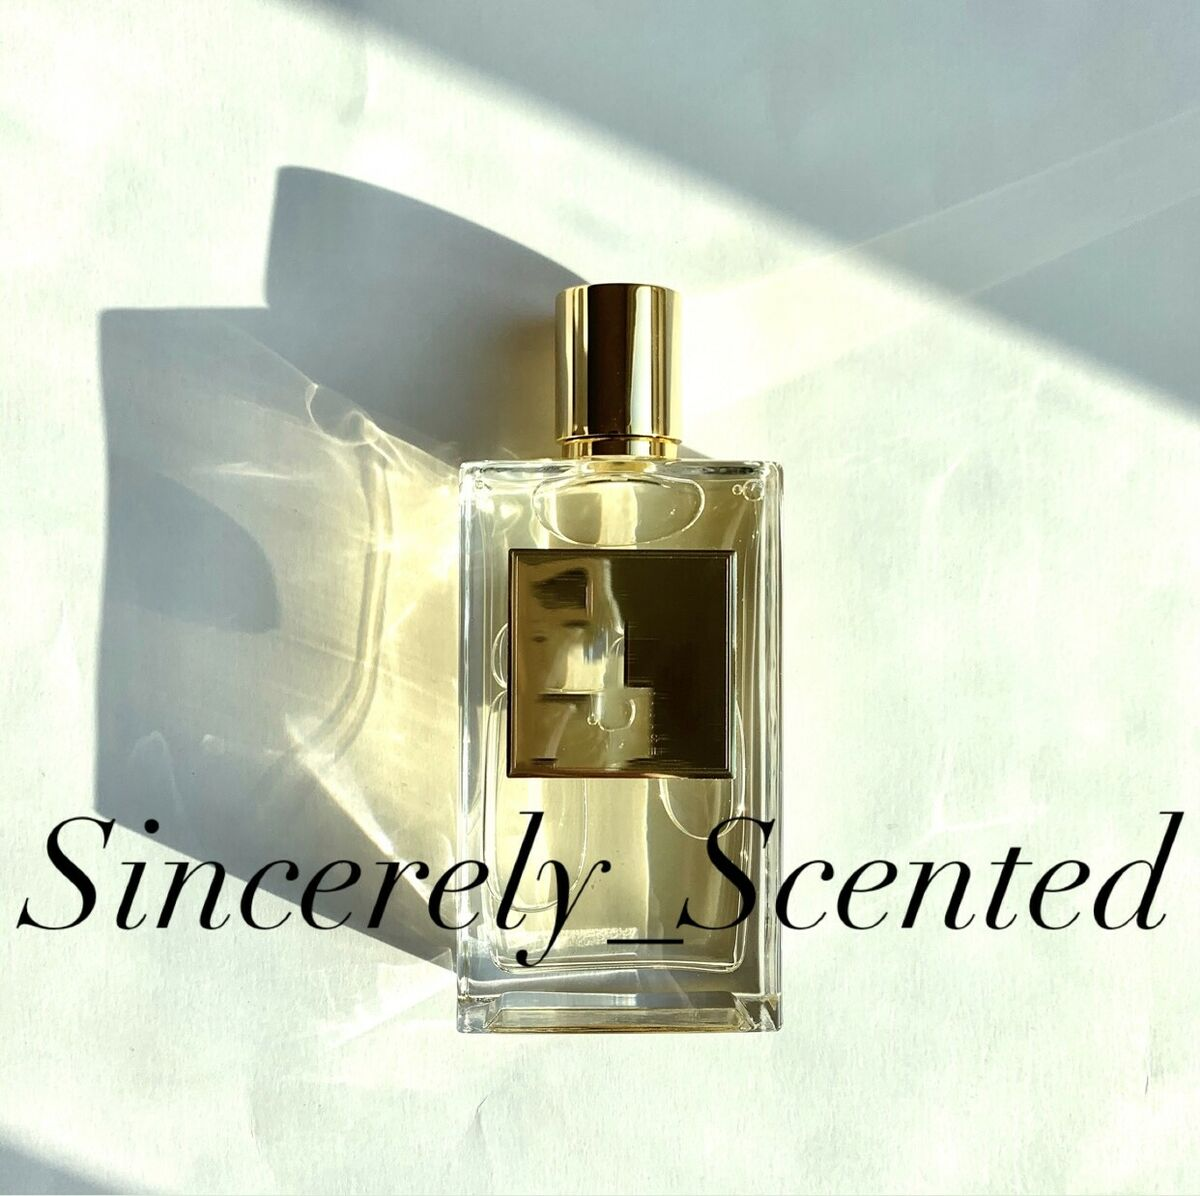 Sincerely_Scented